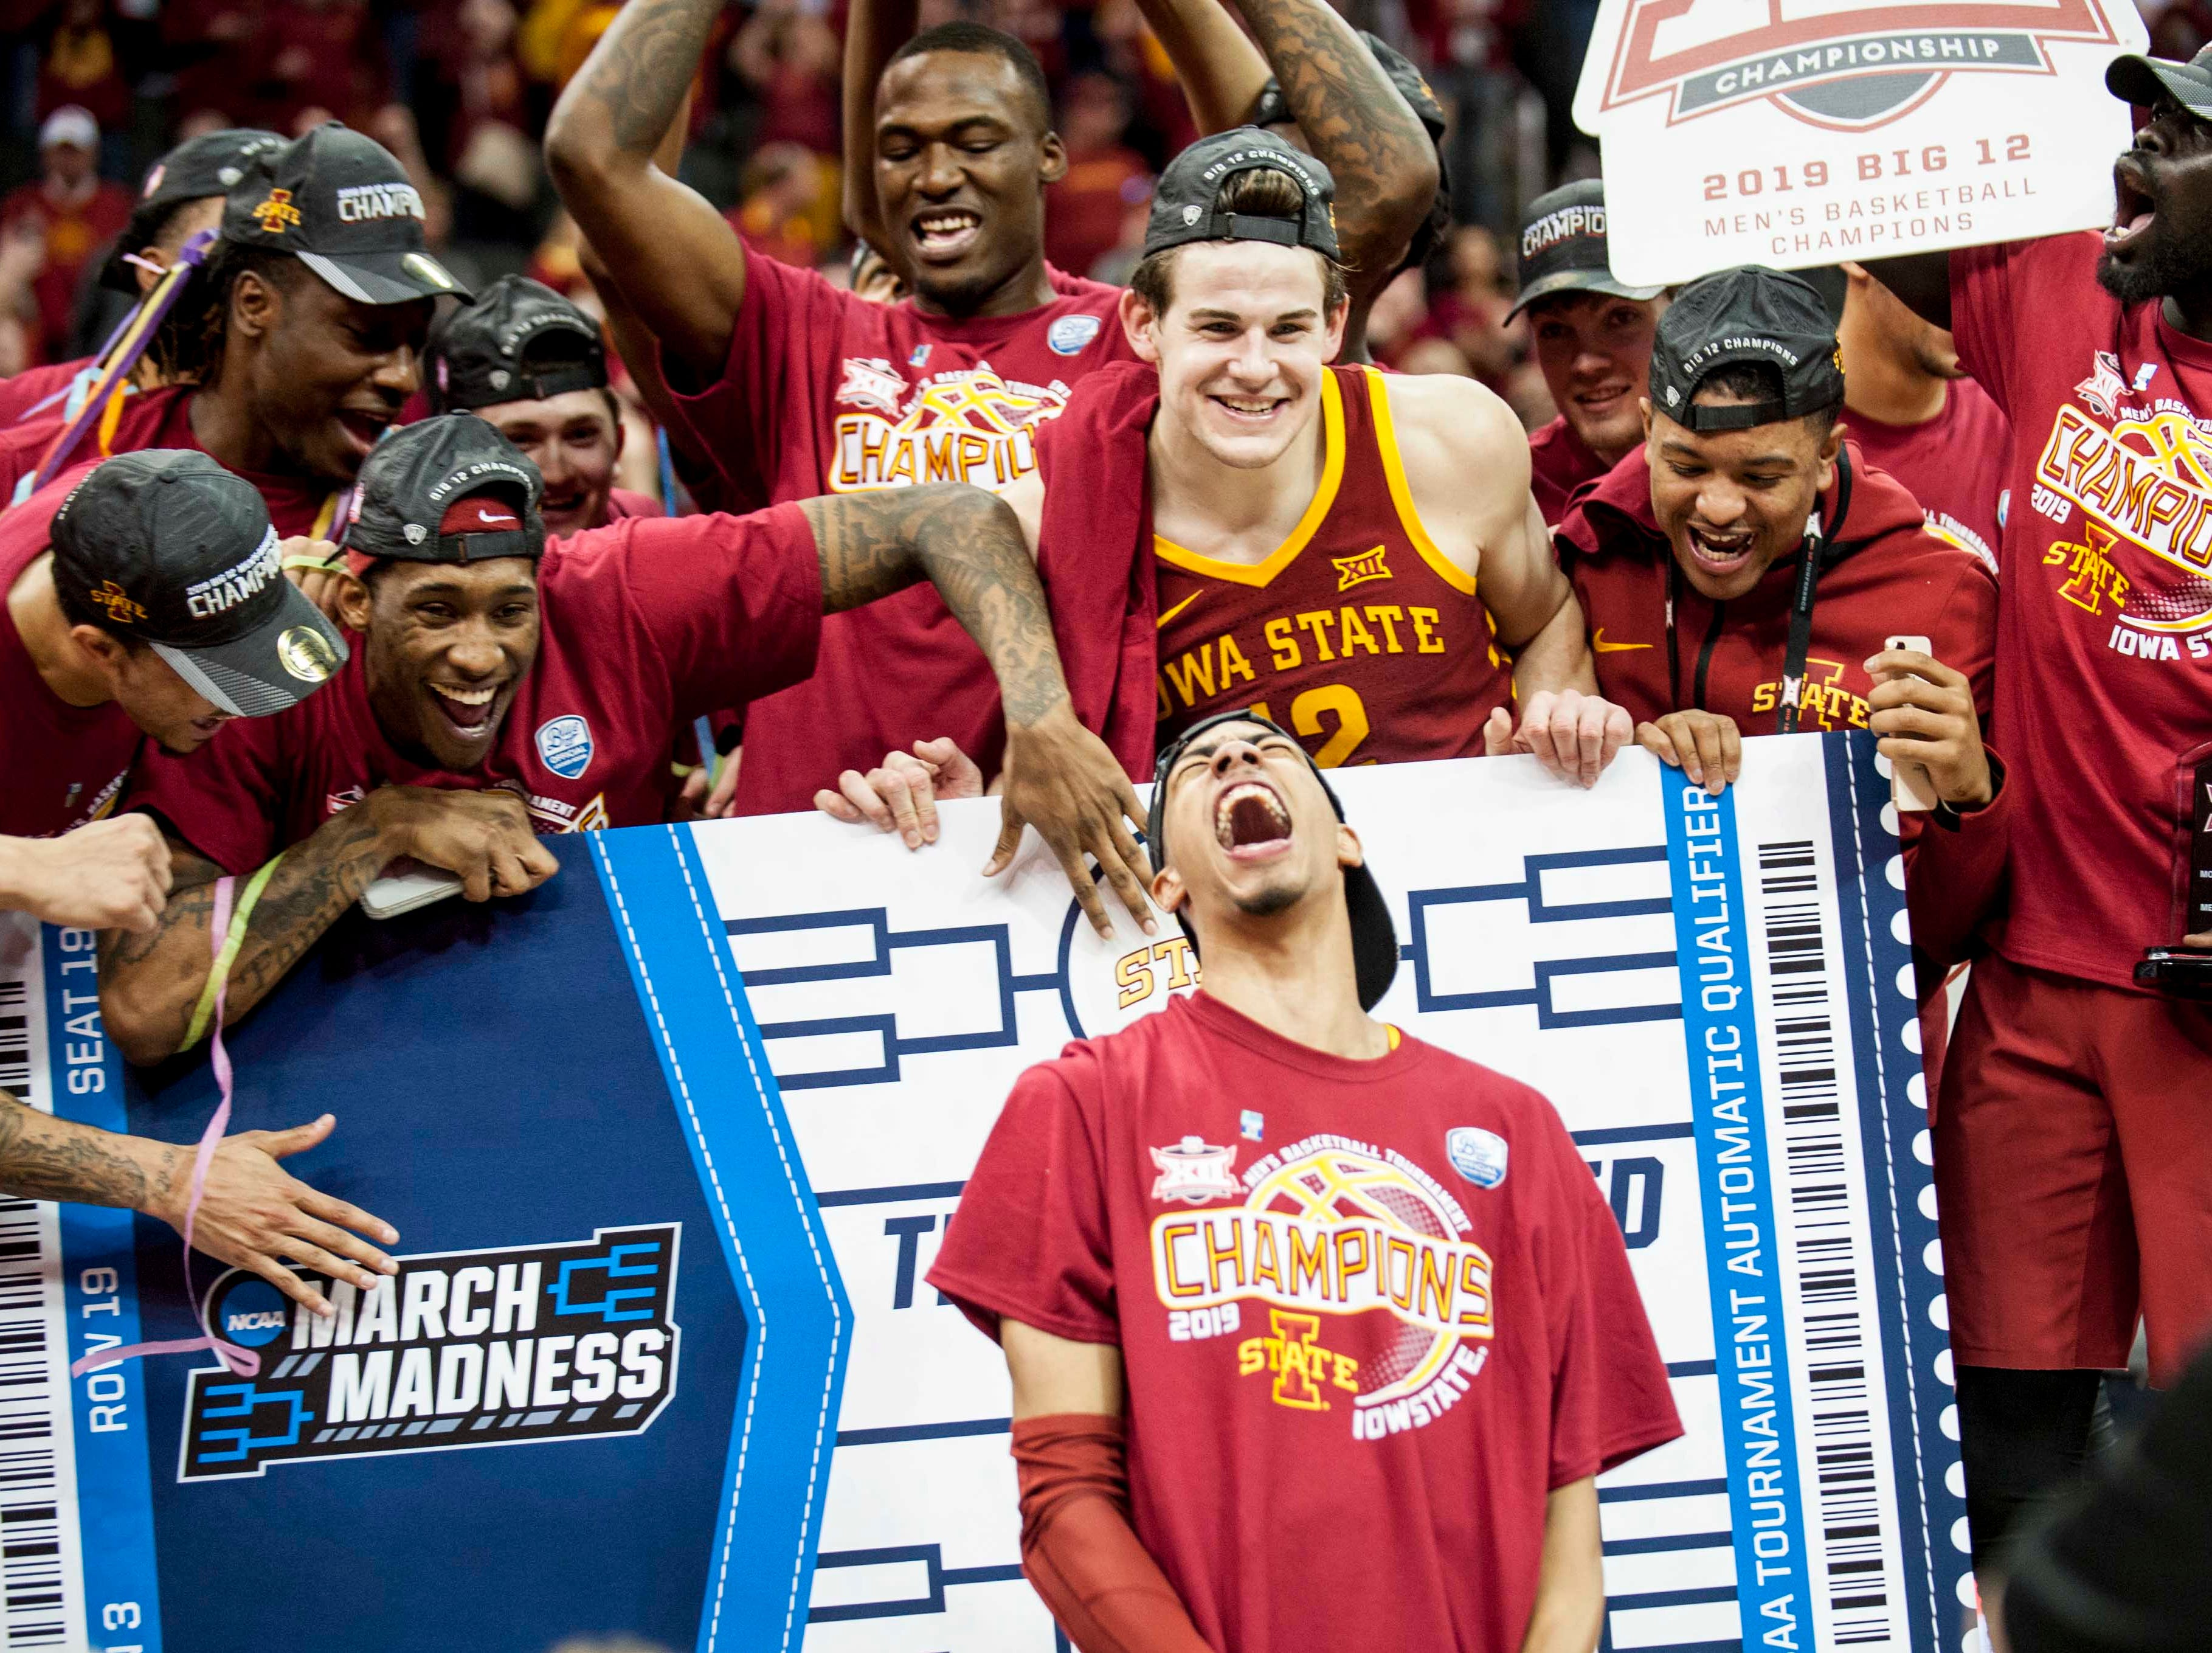 Iowa State (23-11), No. 6 seed in Midwest, Big 12 Conference champion